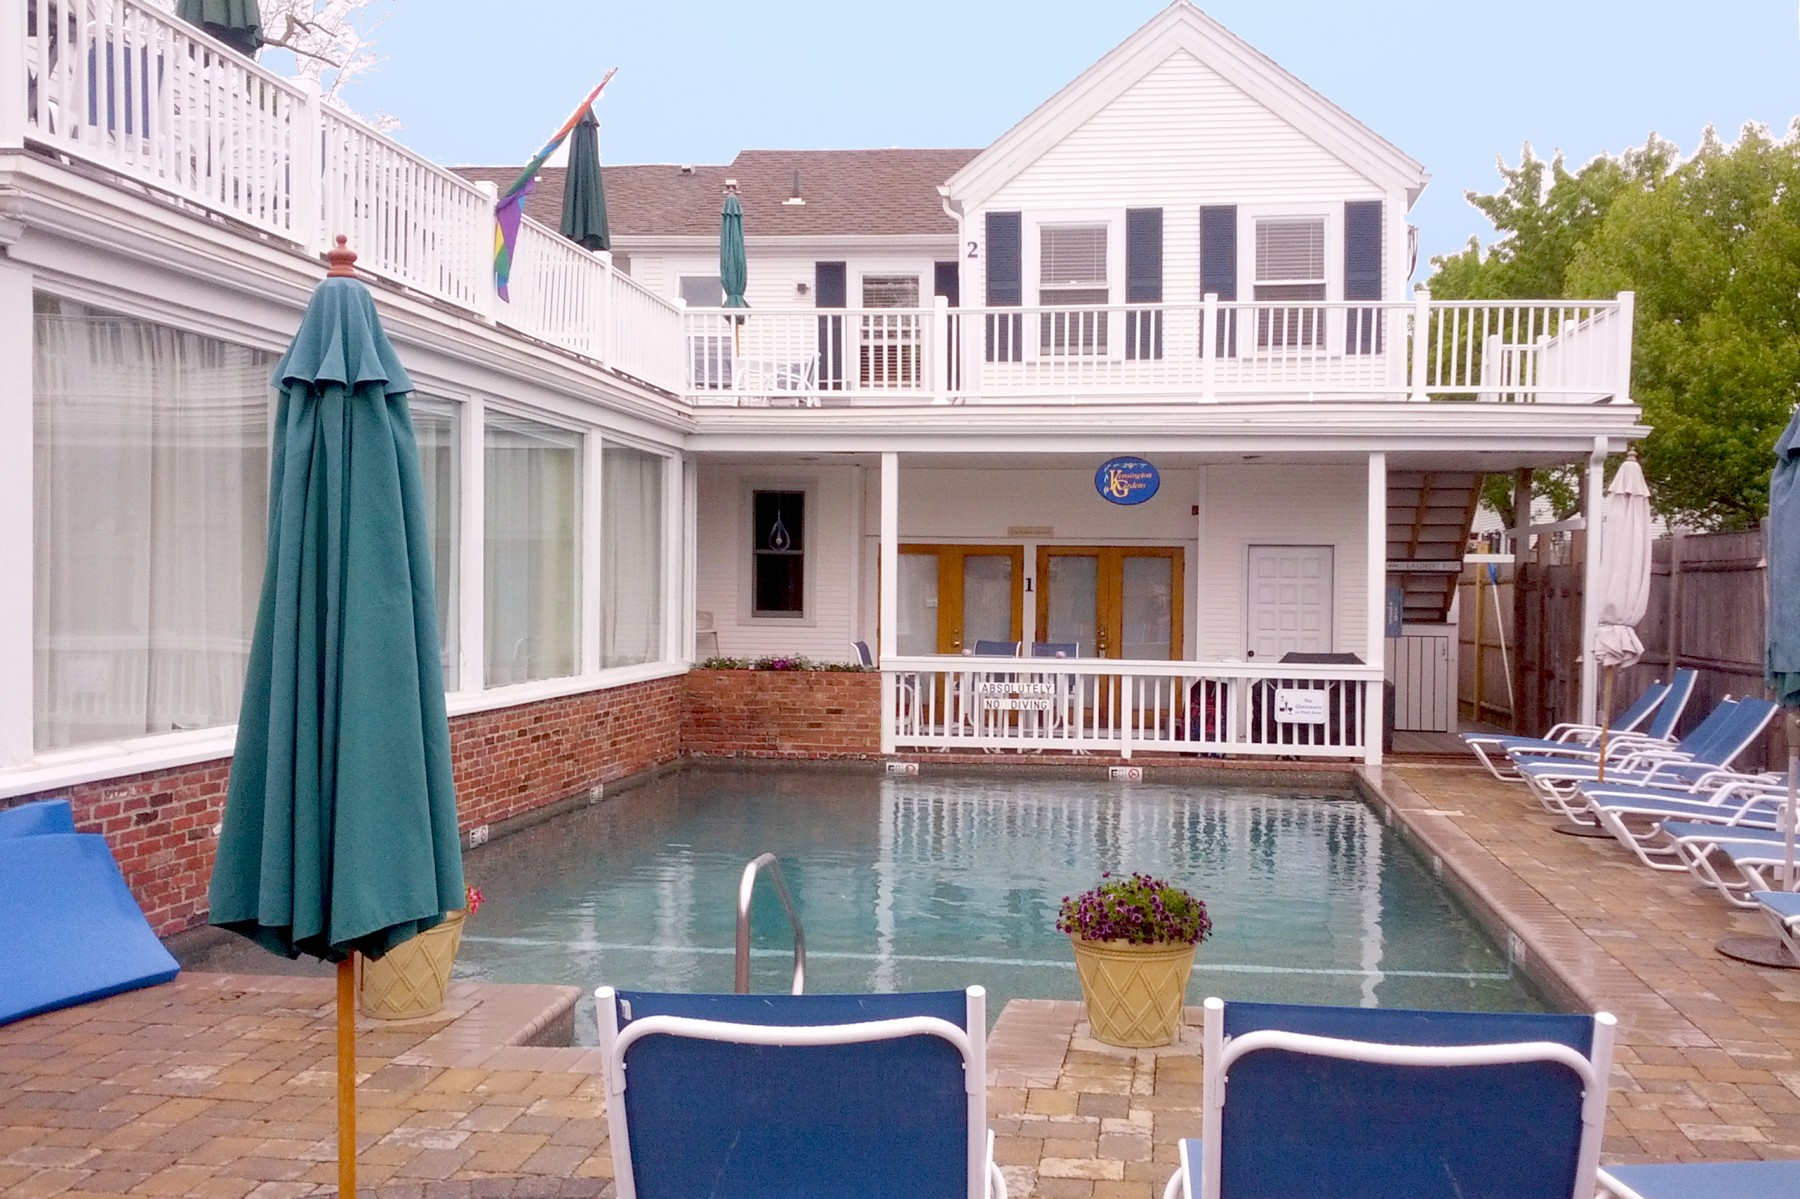 mile cape private beach in across street id to home vacation cottages provincetown the rental ma cod